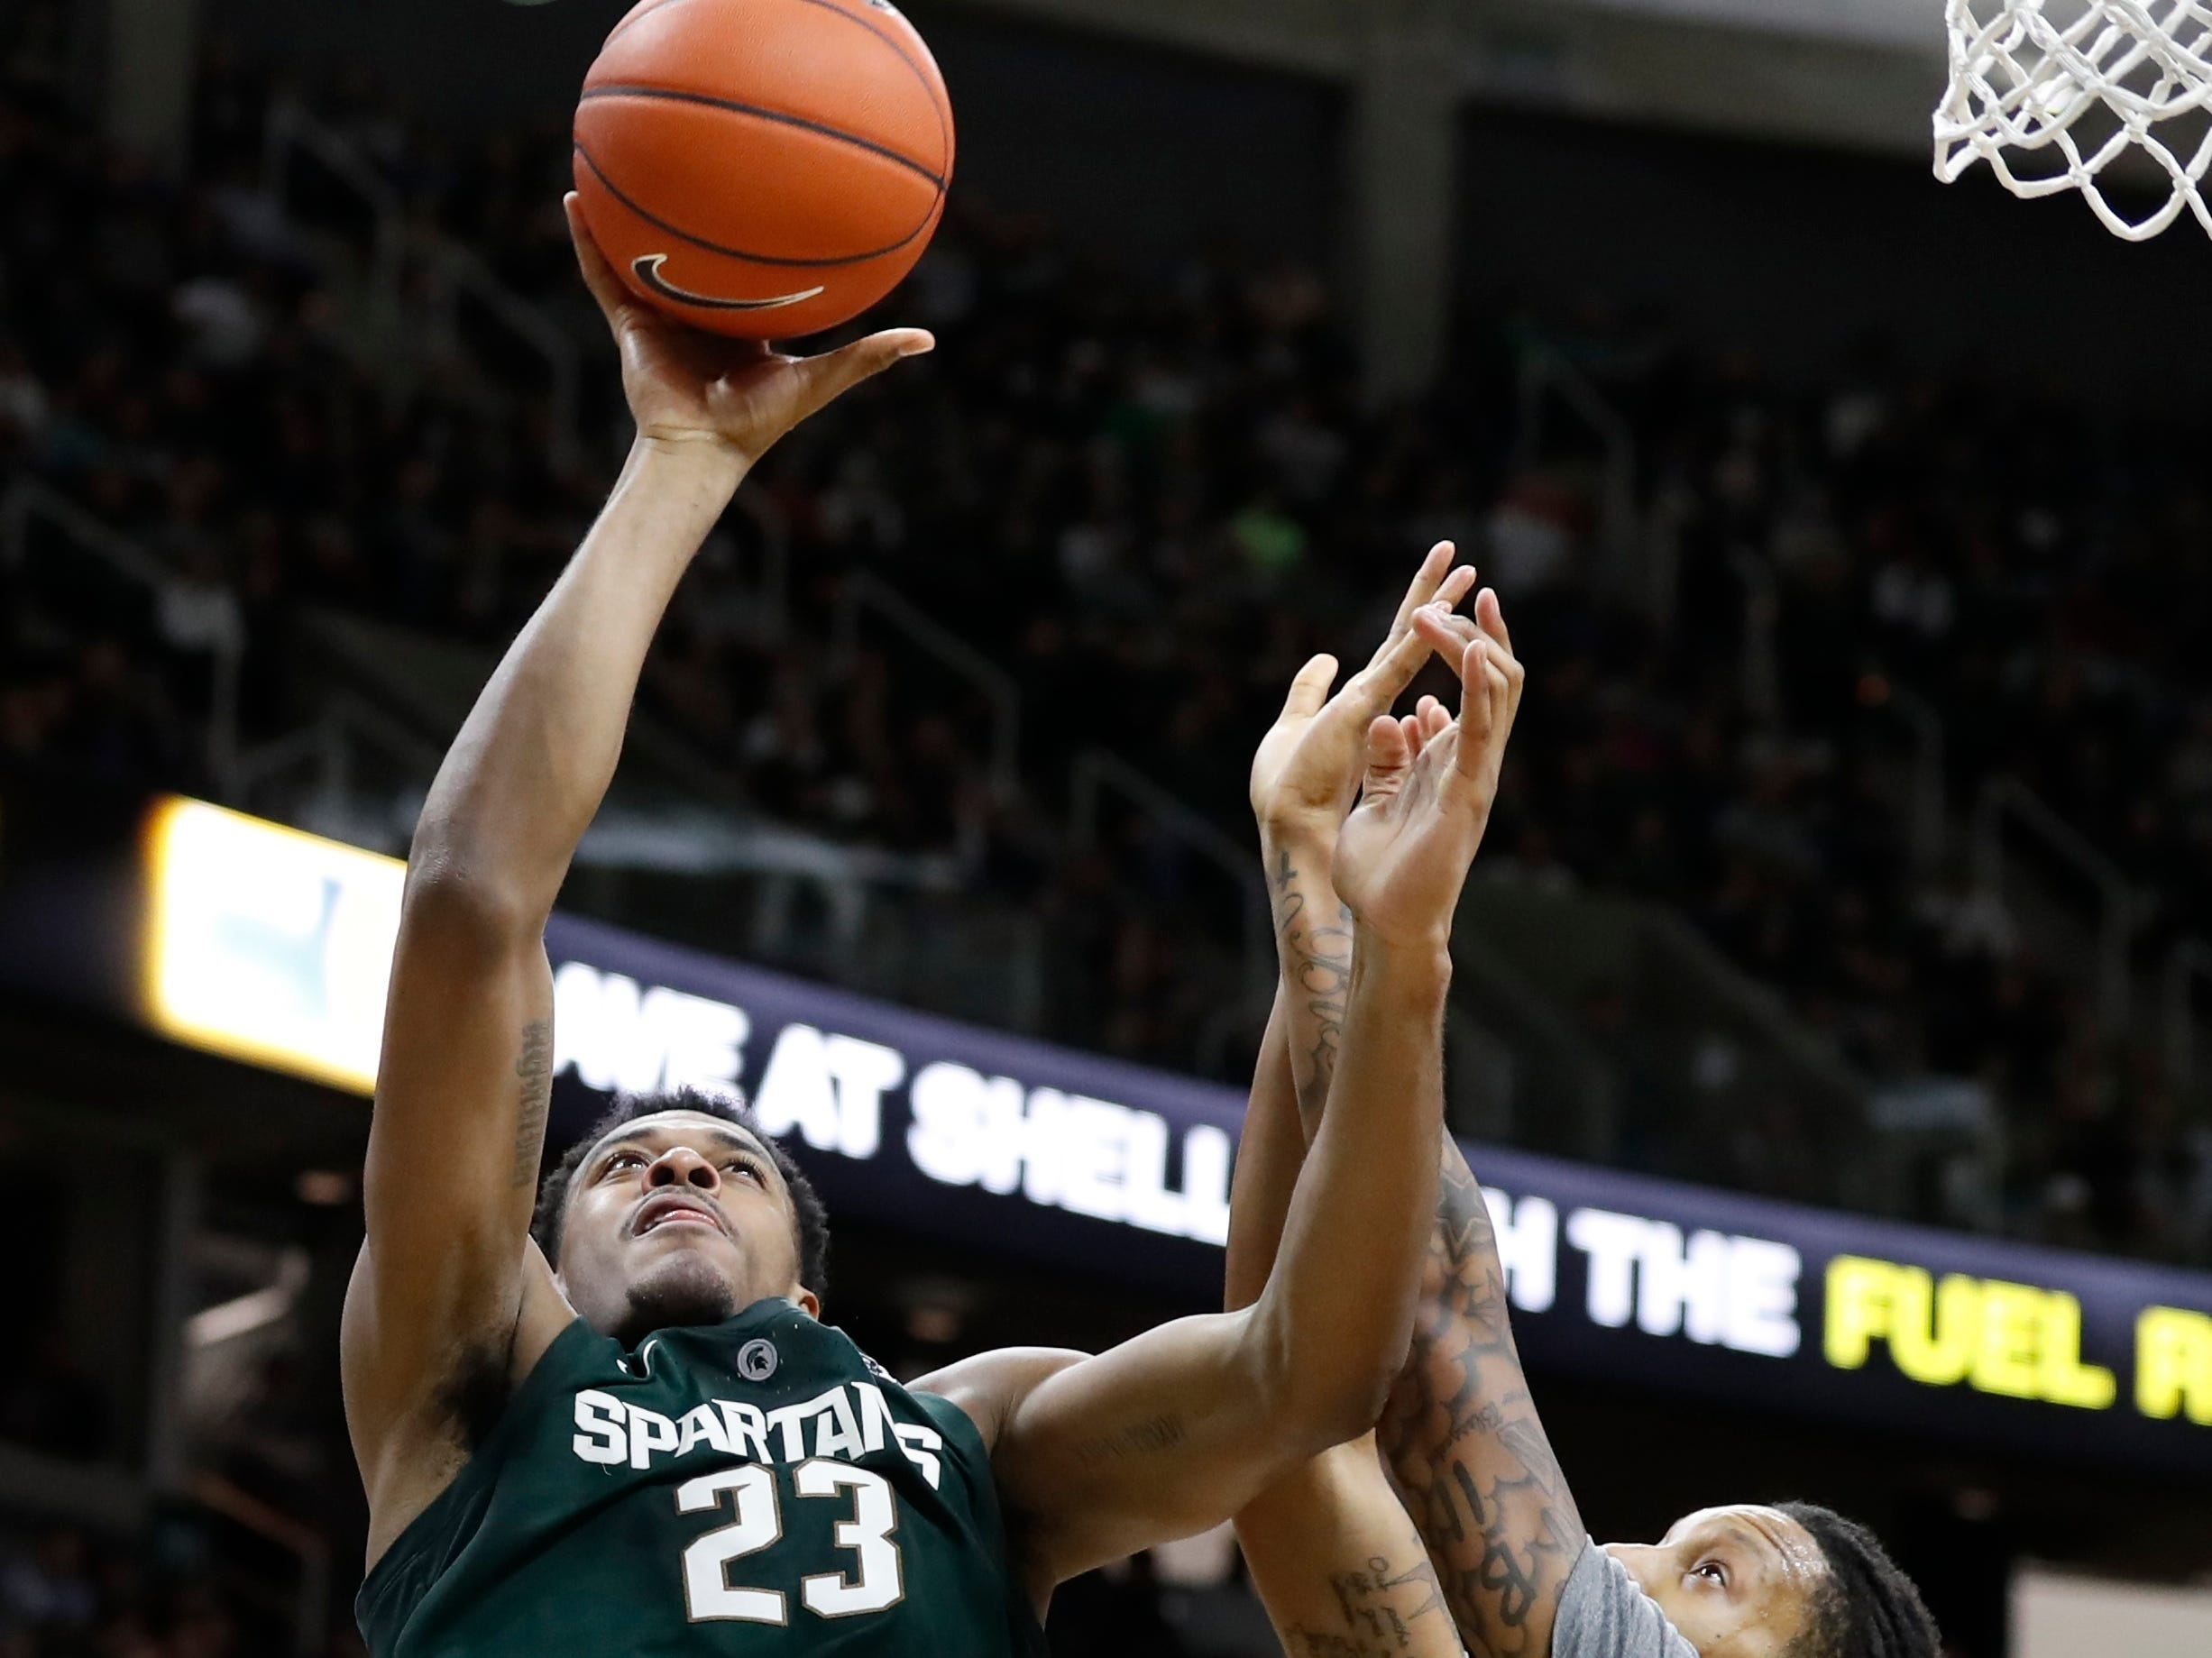 Michigan State forward Xavier Tillman (23) shoots as Oakland forward James Beck (22) defends during the second half of an NCAA college basketball game, Friday, Dec. 21, 2018, in East Lansing, Mich.